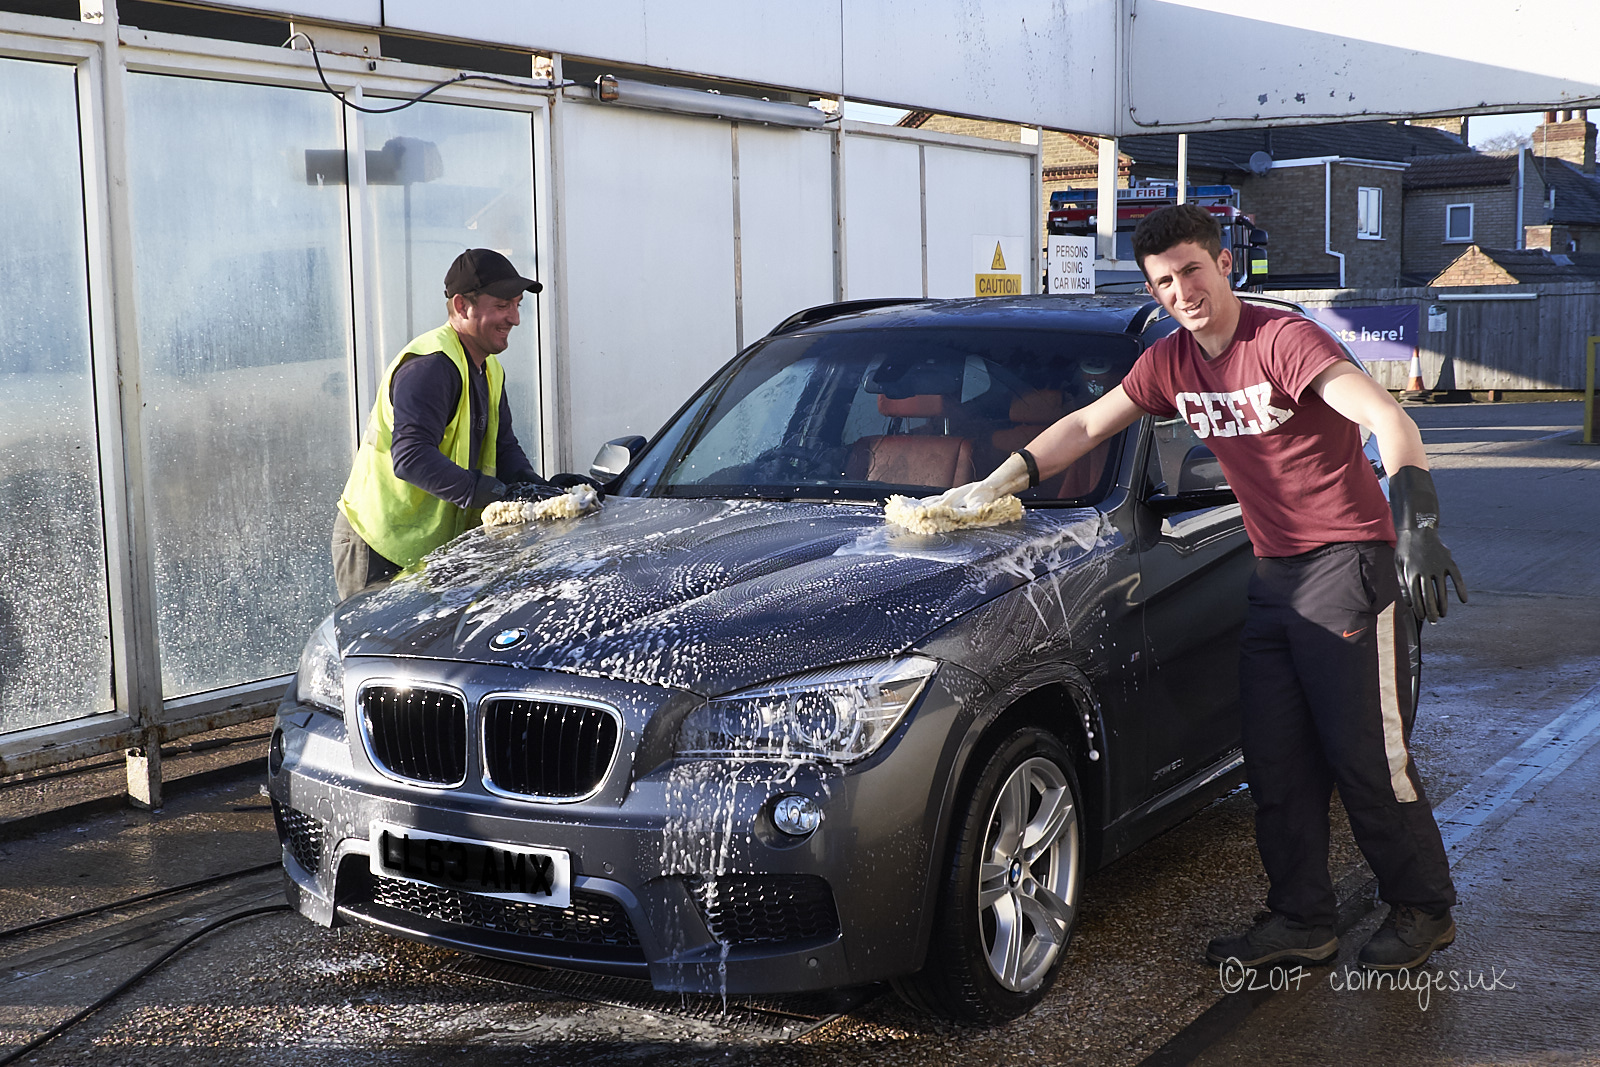 Two men wash a car